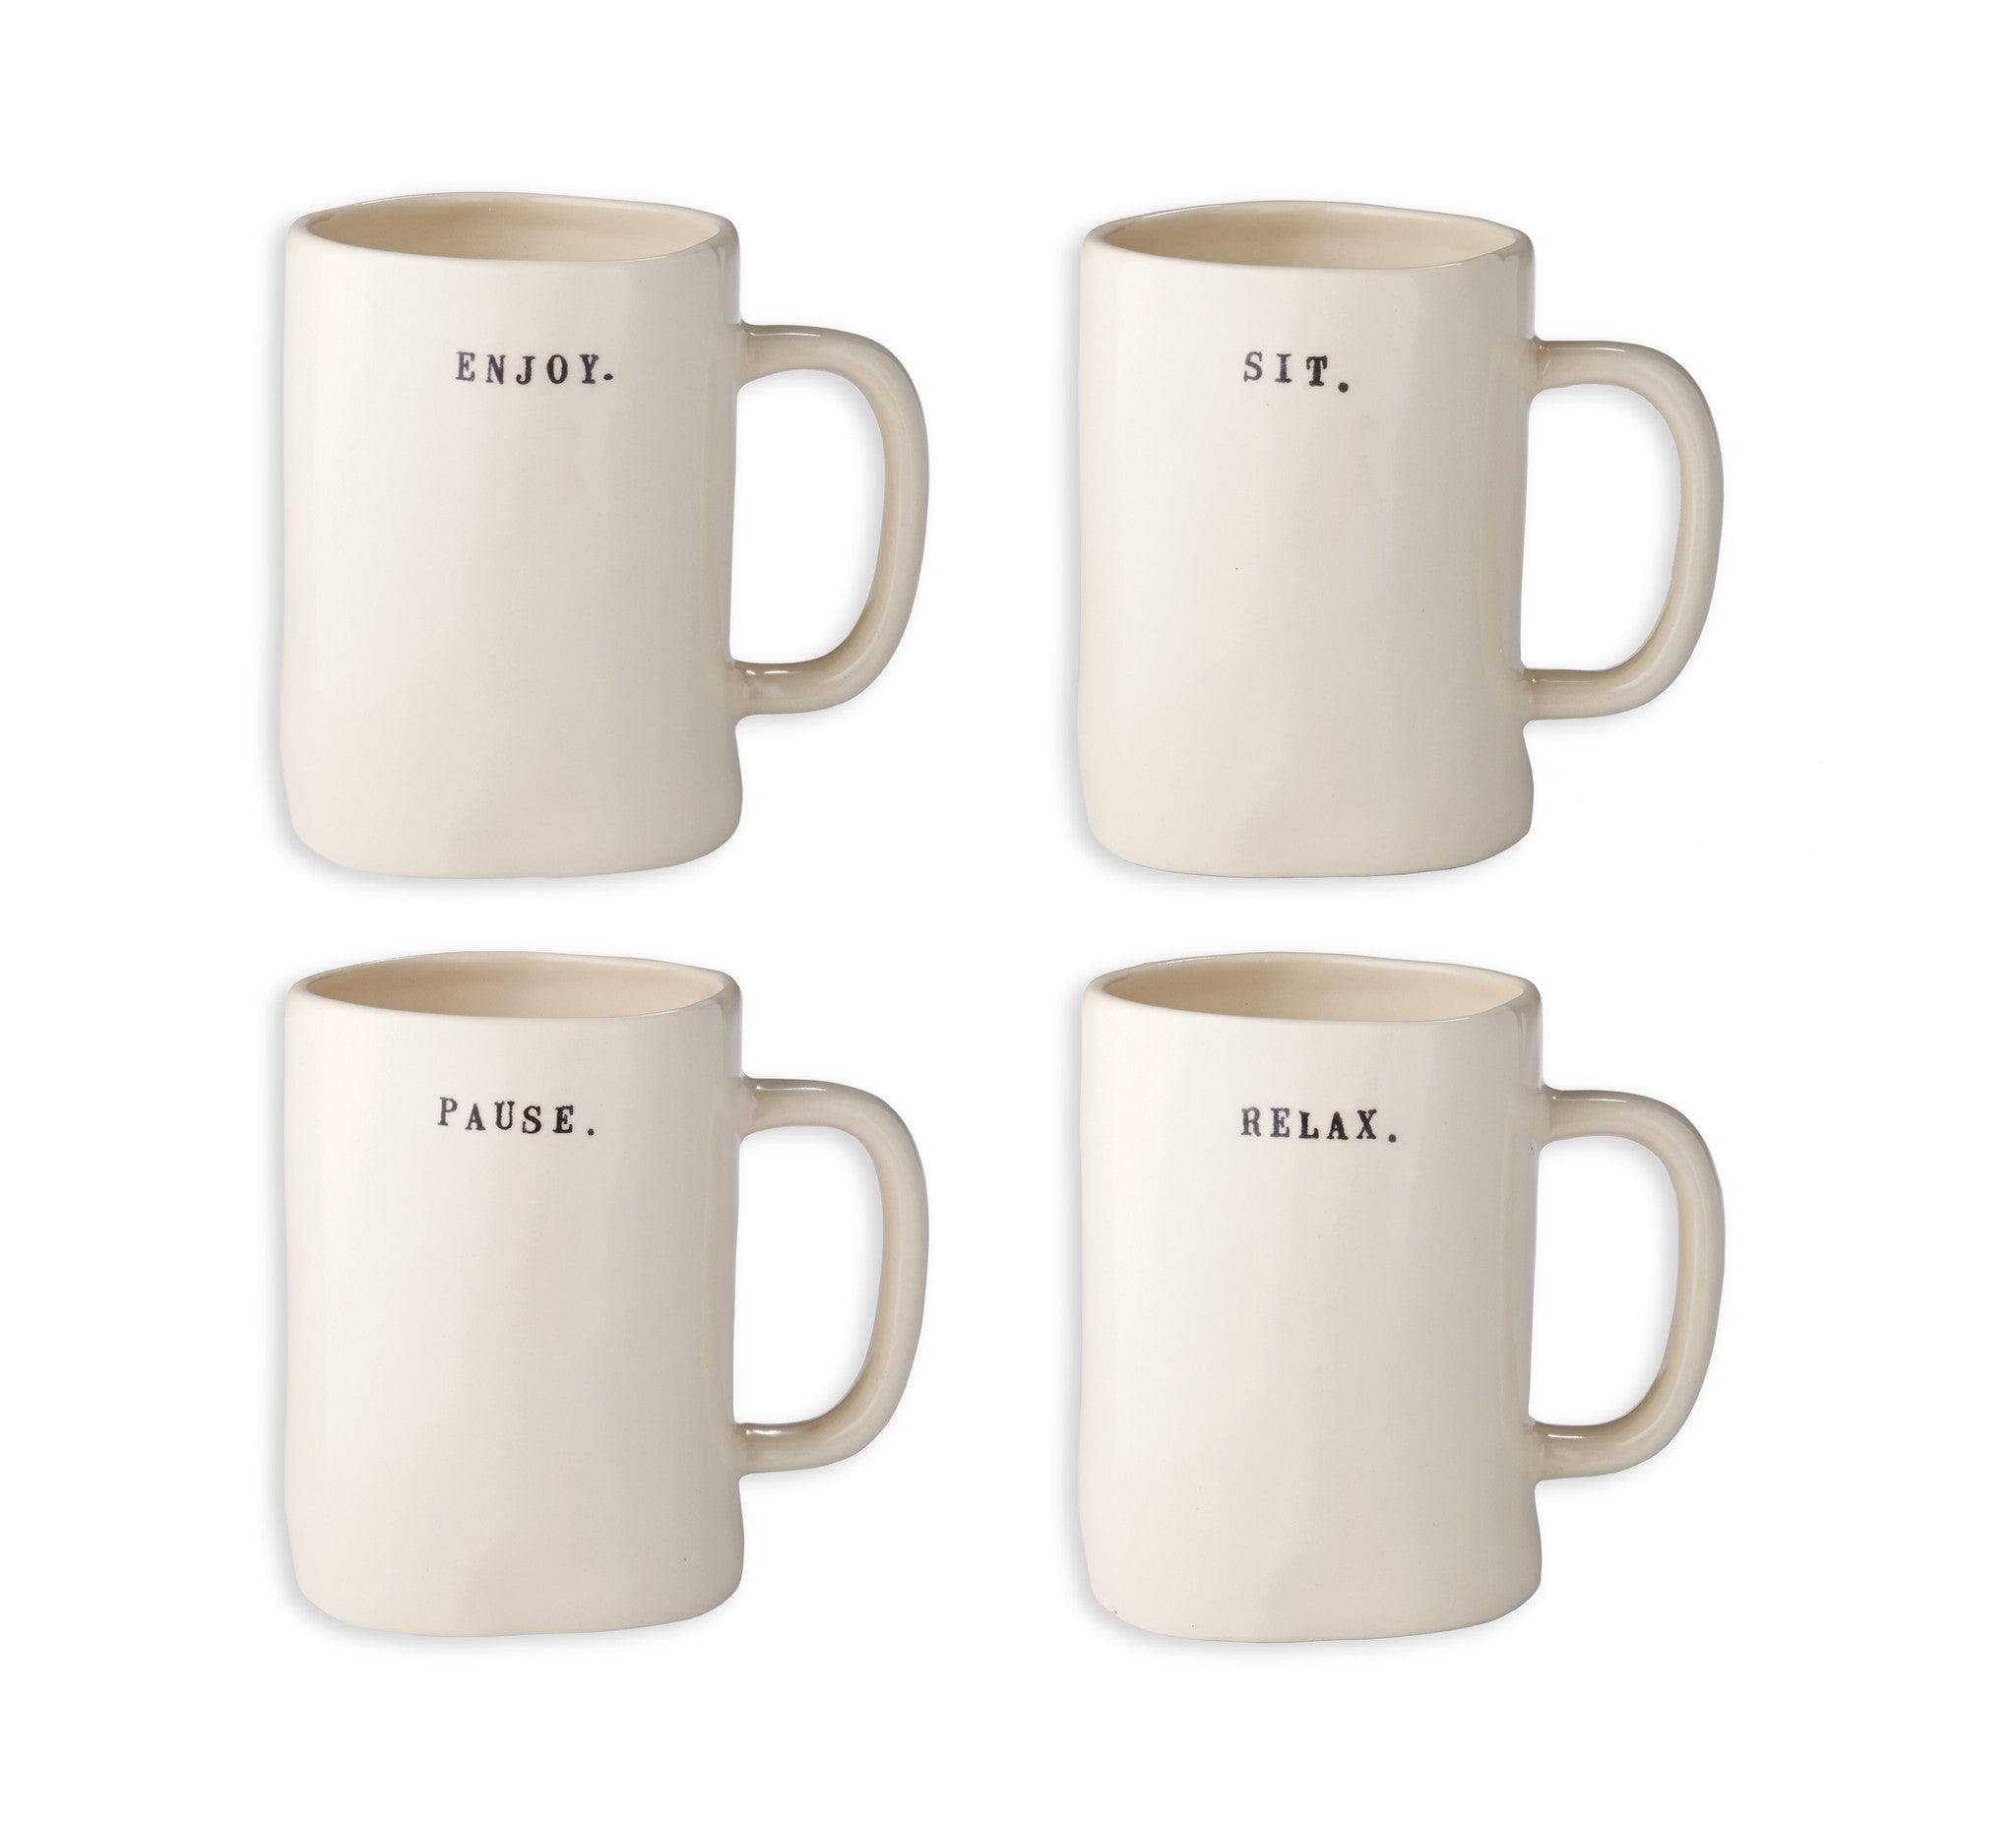 Rae Dunn Mugs - Sit, Pause, Enjoy, Relax